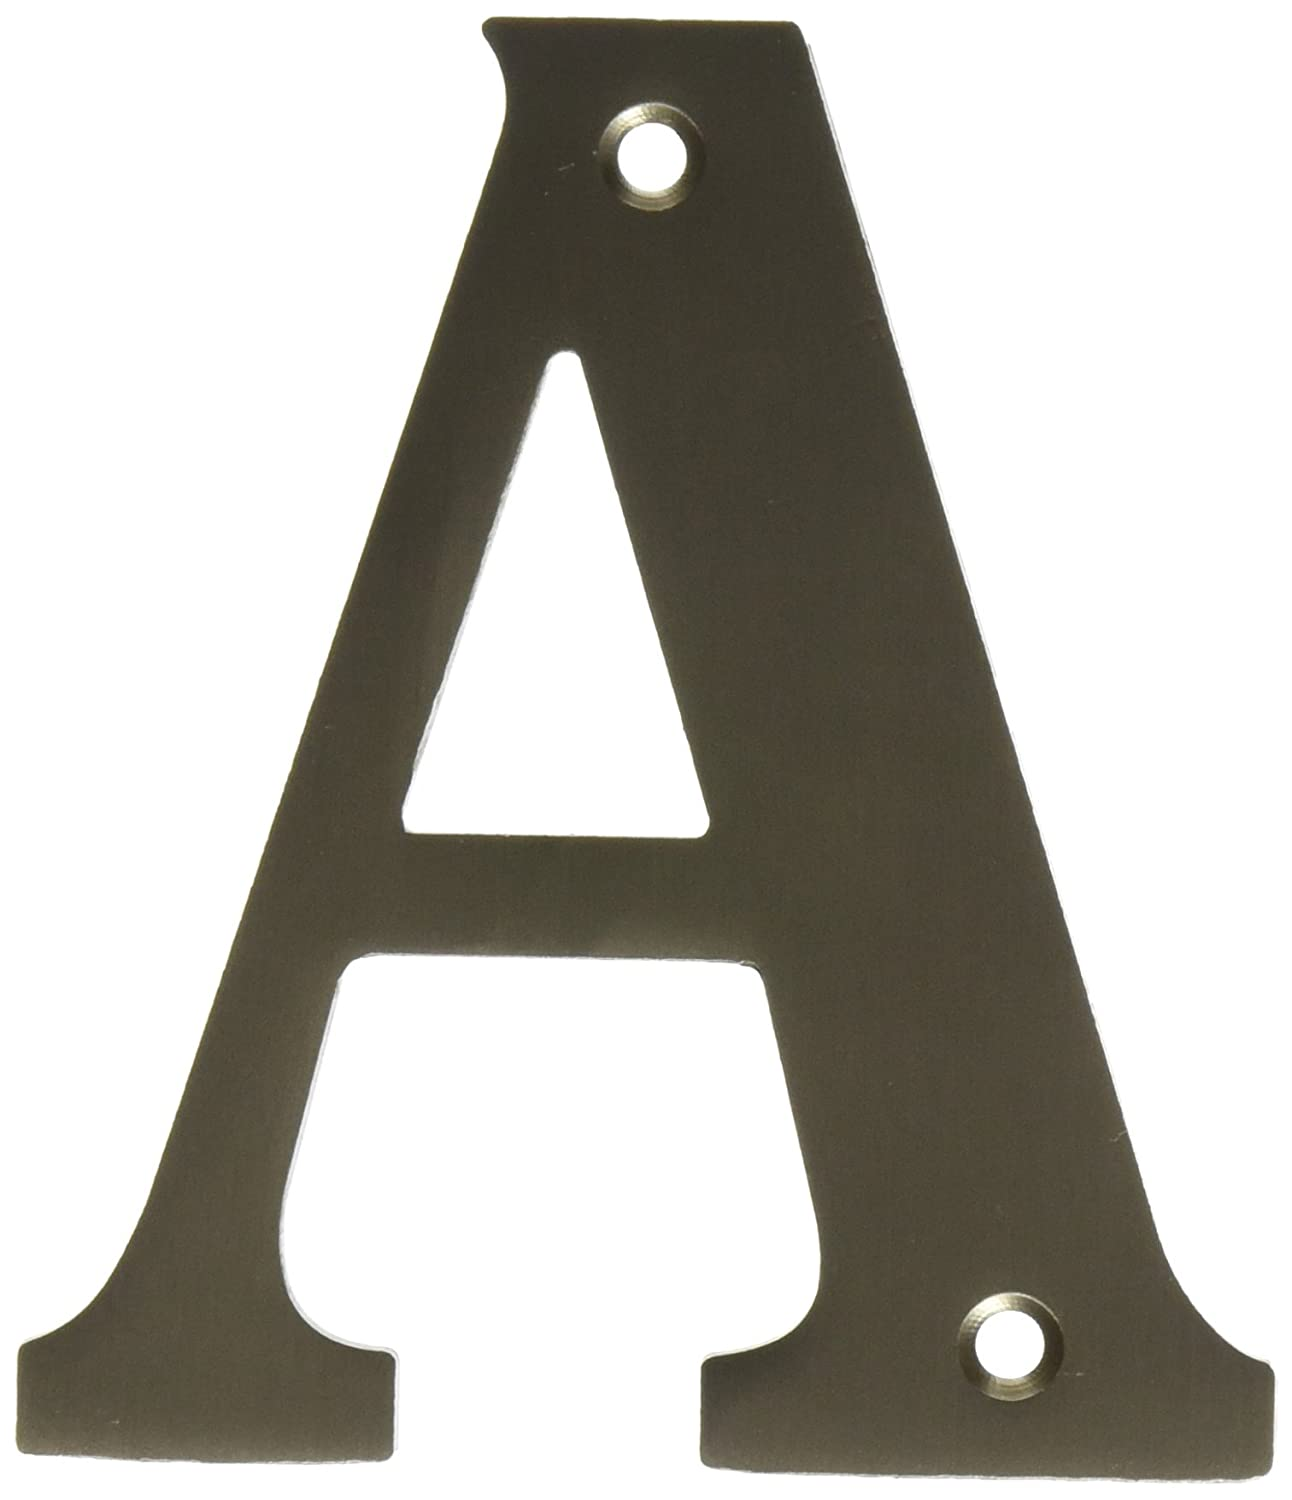 Deltana RL4A-15 4-Inch Residential Letter A House Board Top Notch Distributors Inc. (Home Improvement)